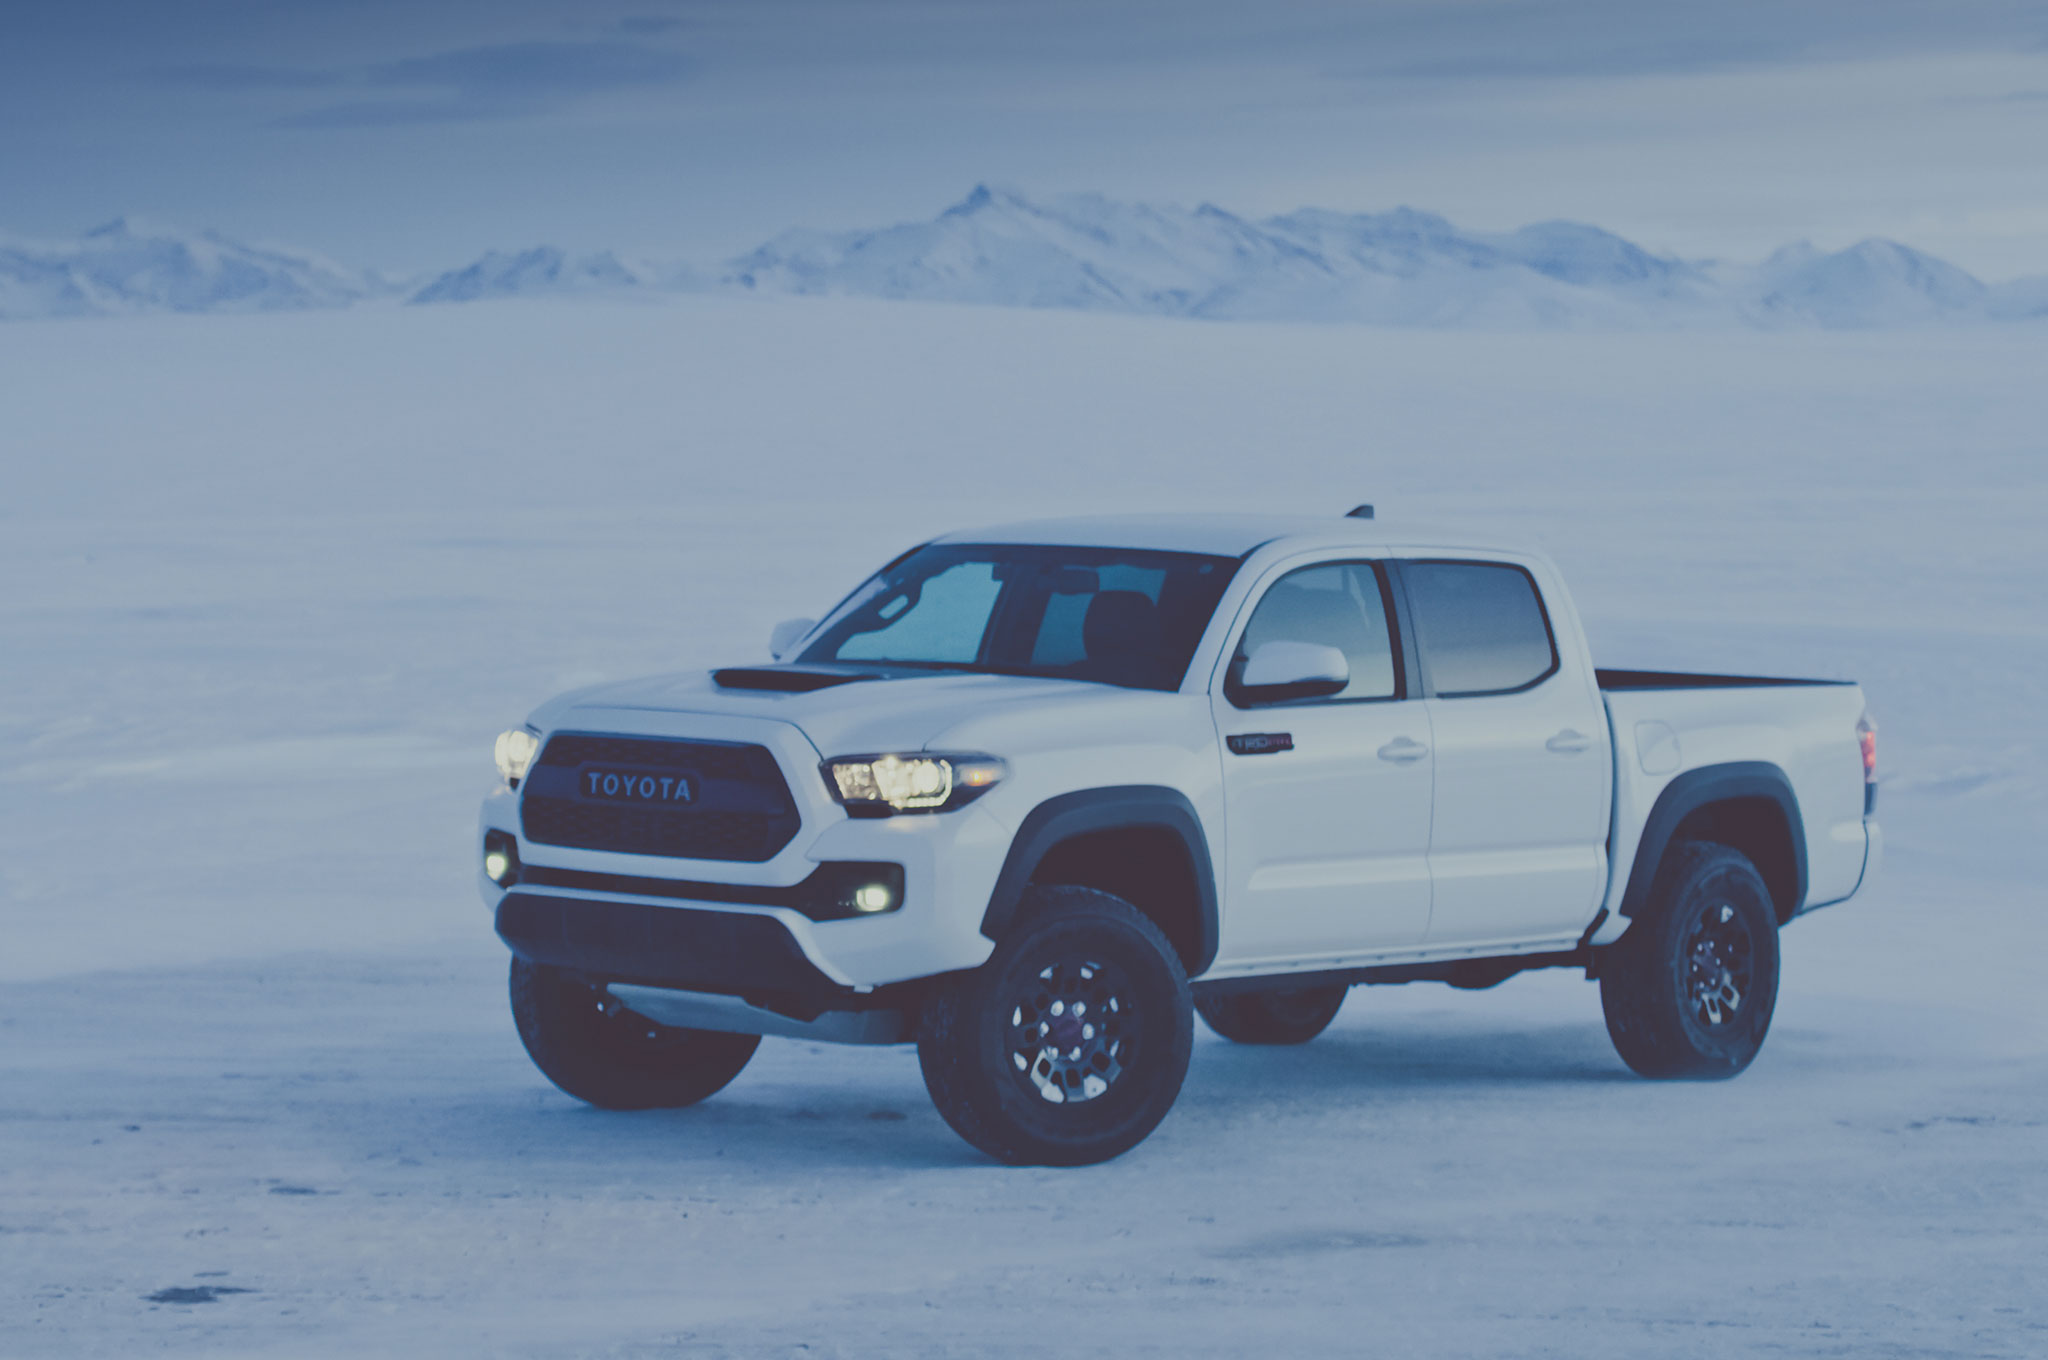 HQ Toyota Tacoma Wallpapers | File 156.4Kb